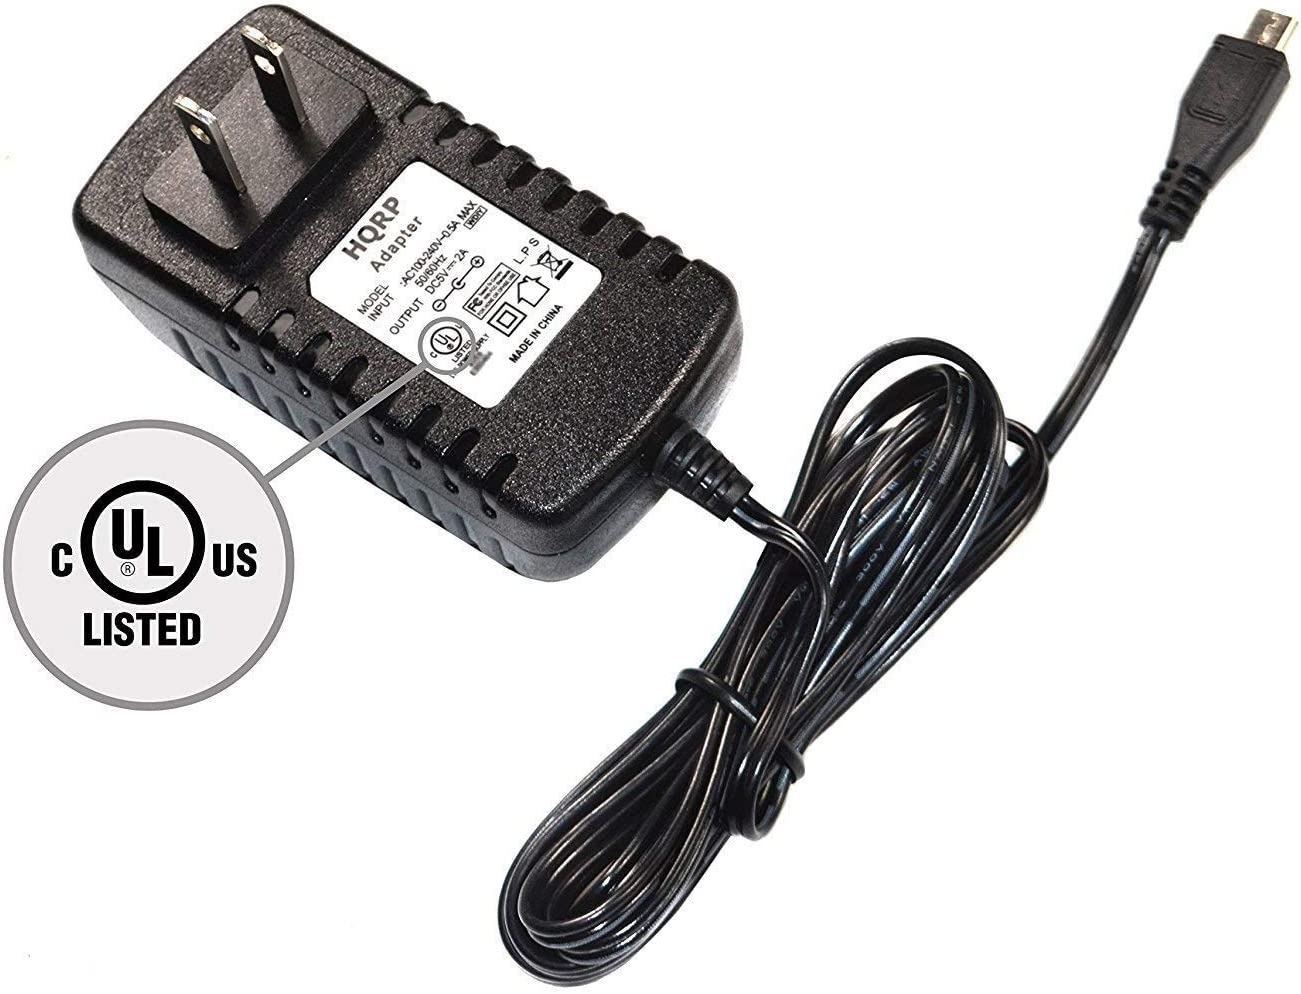 HDR-AS200V//W Action Camera Power Supply Cord Adaptor Charger HDR-AS50B HDR-AS50 HDR-AS20//B//HDR-AS30VR HQRP Euro Plug Adapter HQRP AC Adapter for Sony HDR-AS15//AS10 HDR-AS100VR